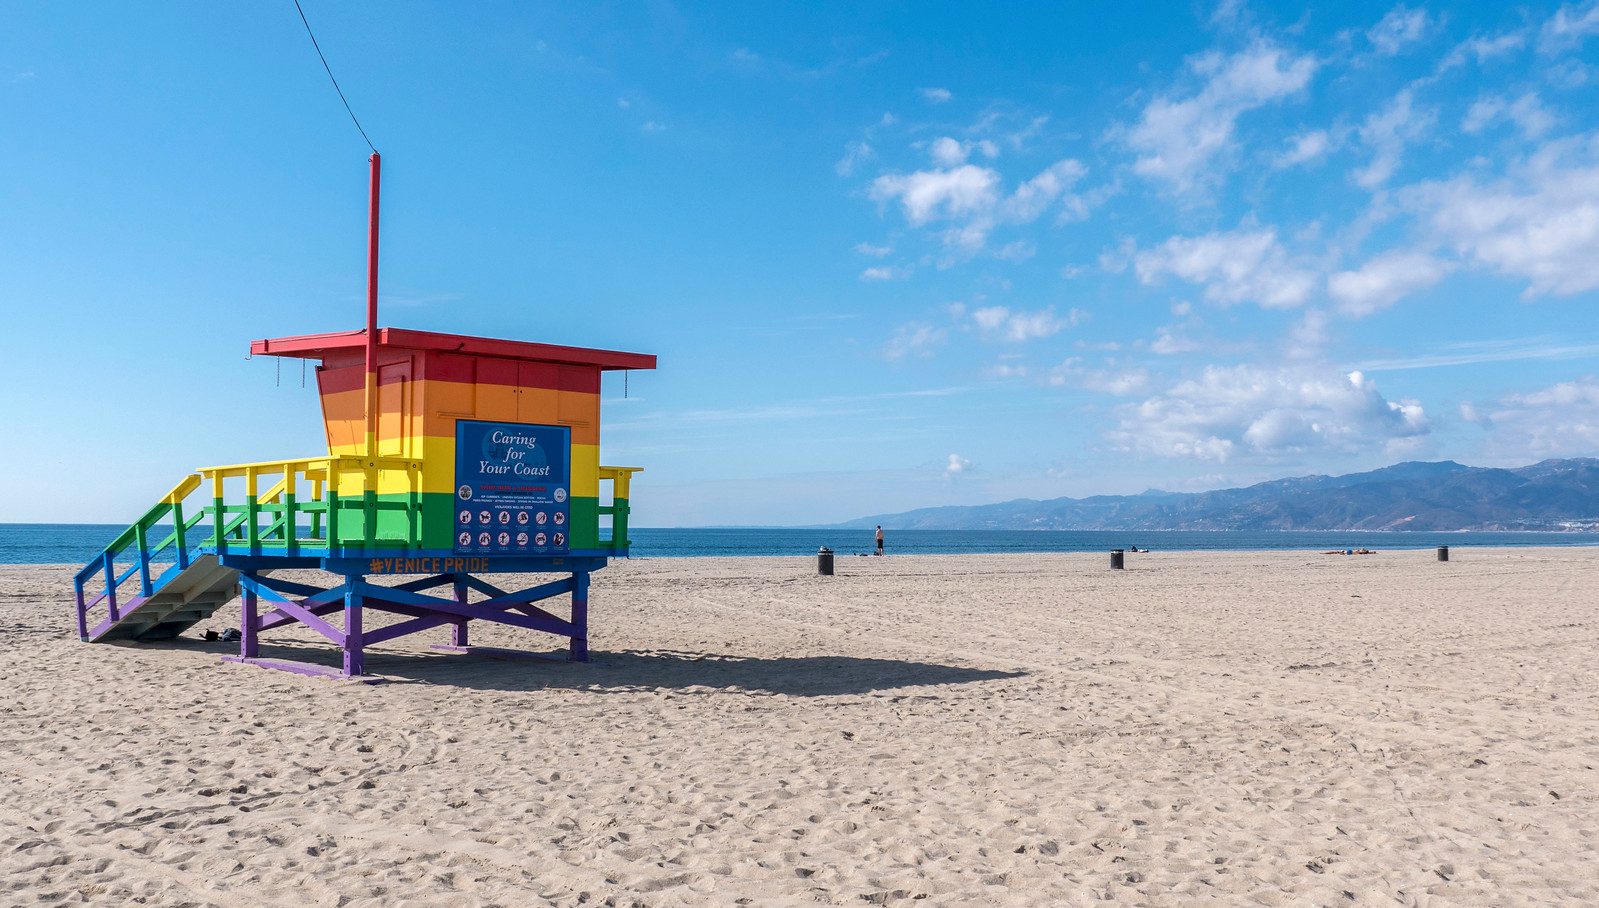 Venice Pride Lifeguard Stand - 2 Days in Los Angeles Itinerary for First Timers